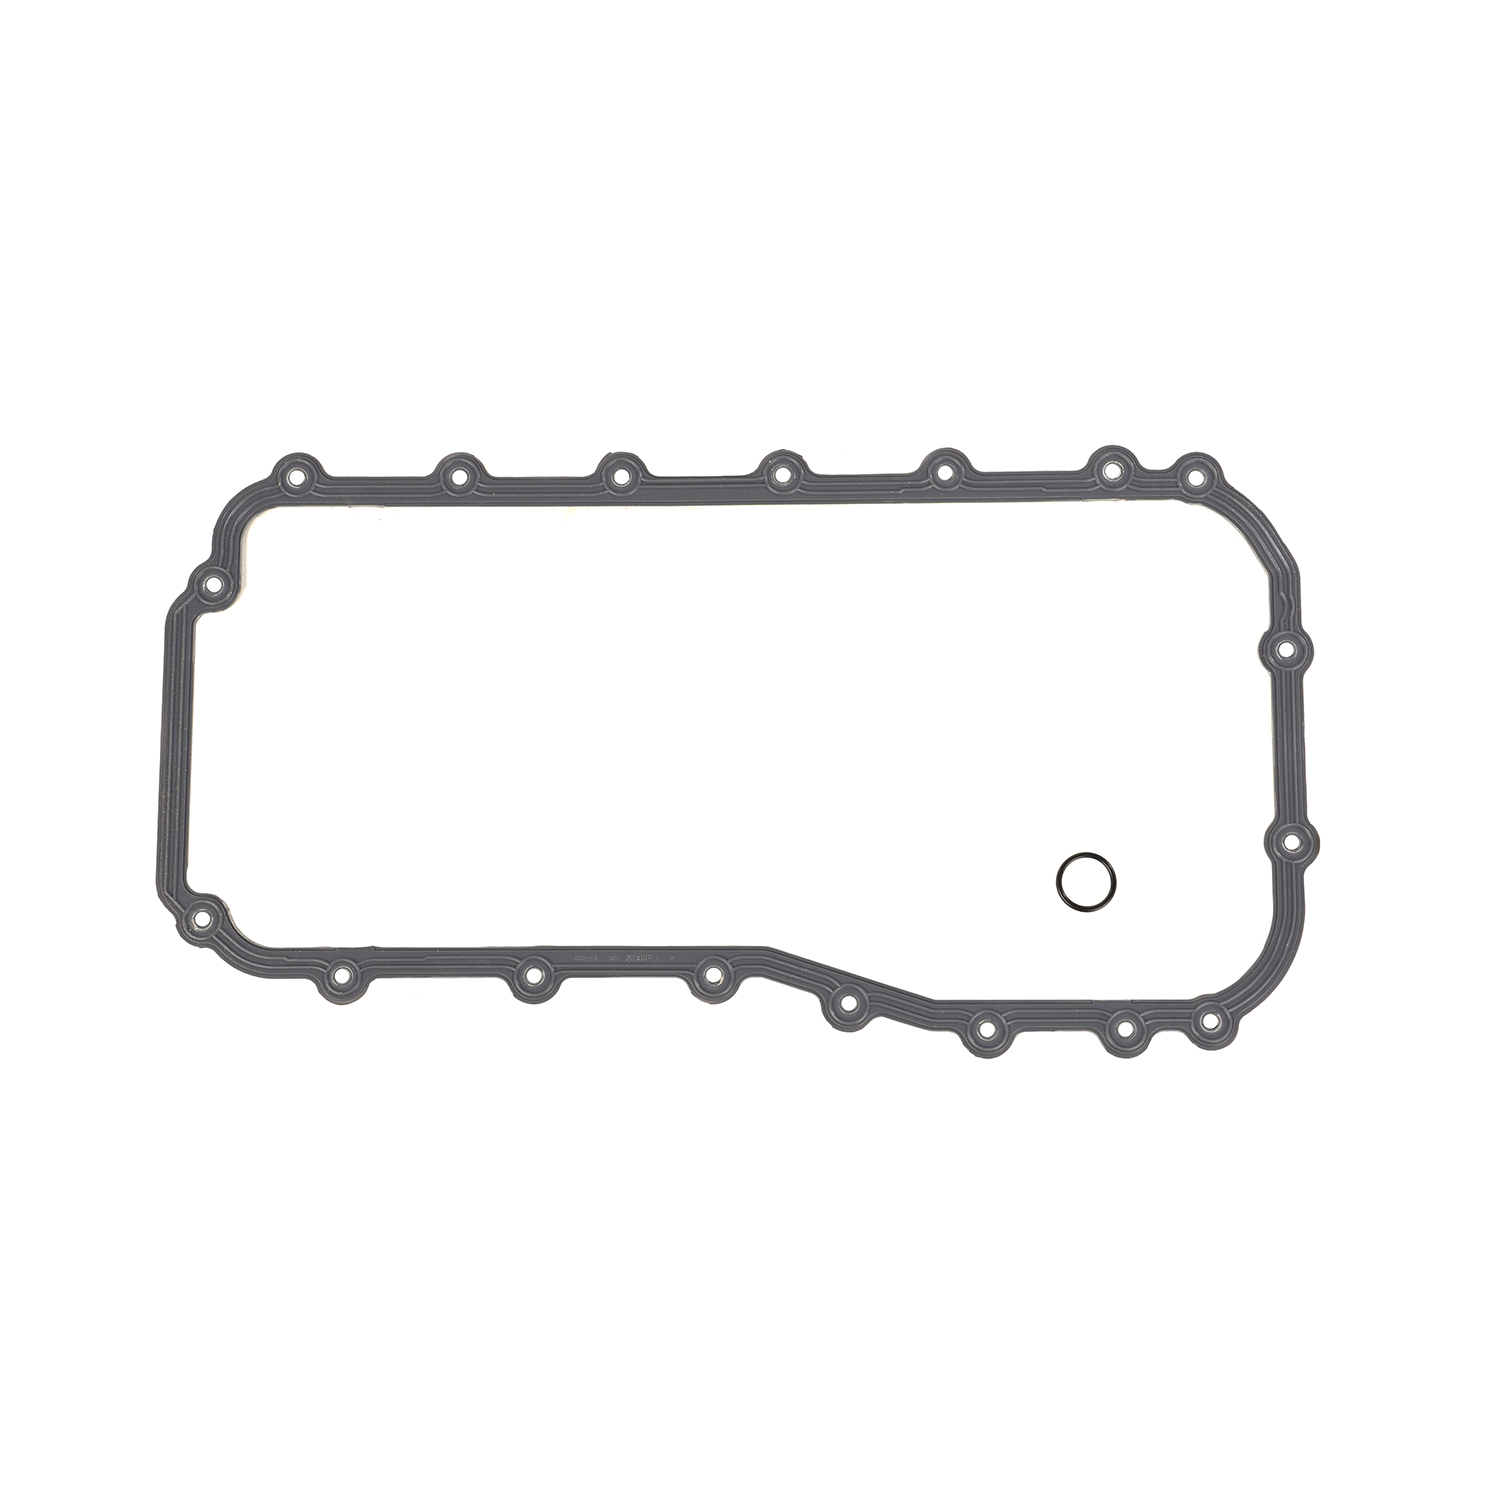 15 Engine Oil Pan Gasket 3 8l 07 11 Jeep Wrangler Jk